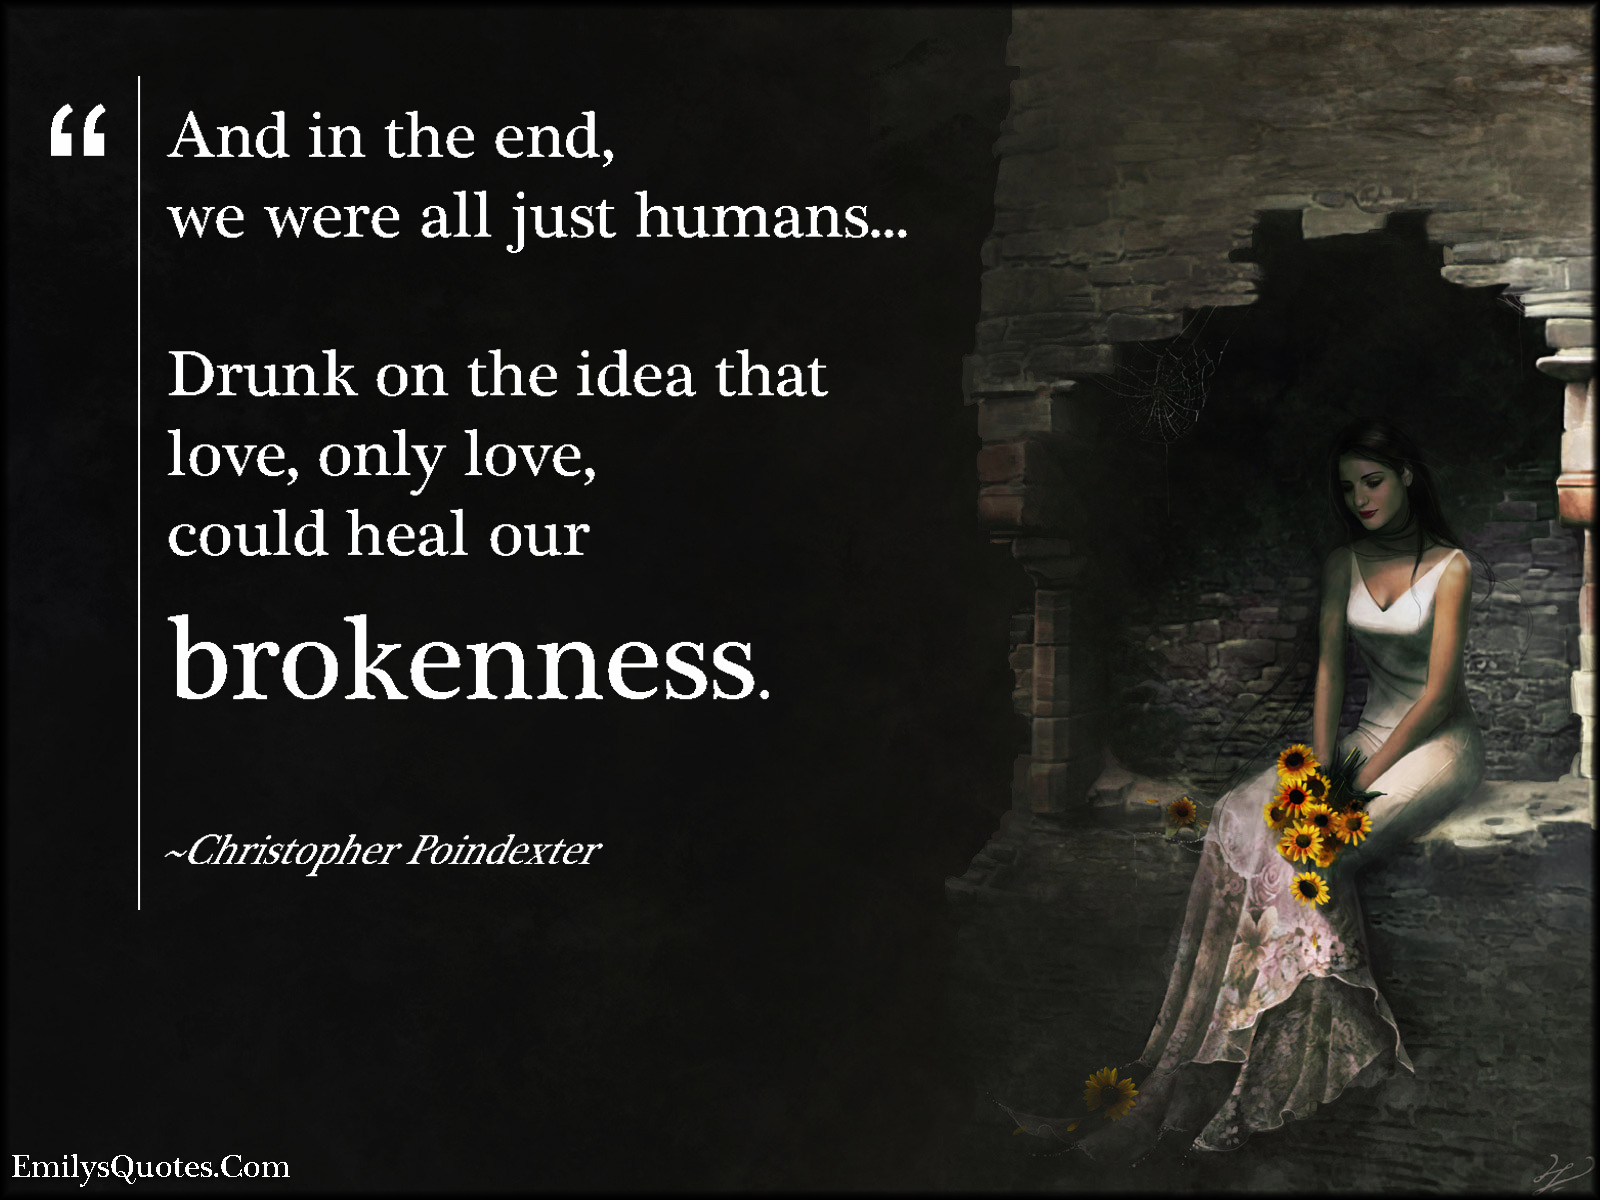 EmilysQuotes.Com - sad, love, brokenness, amazing, Christopher Poindexter